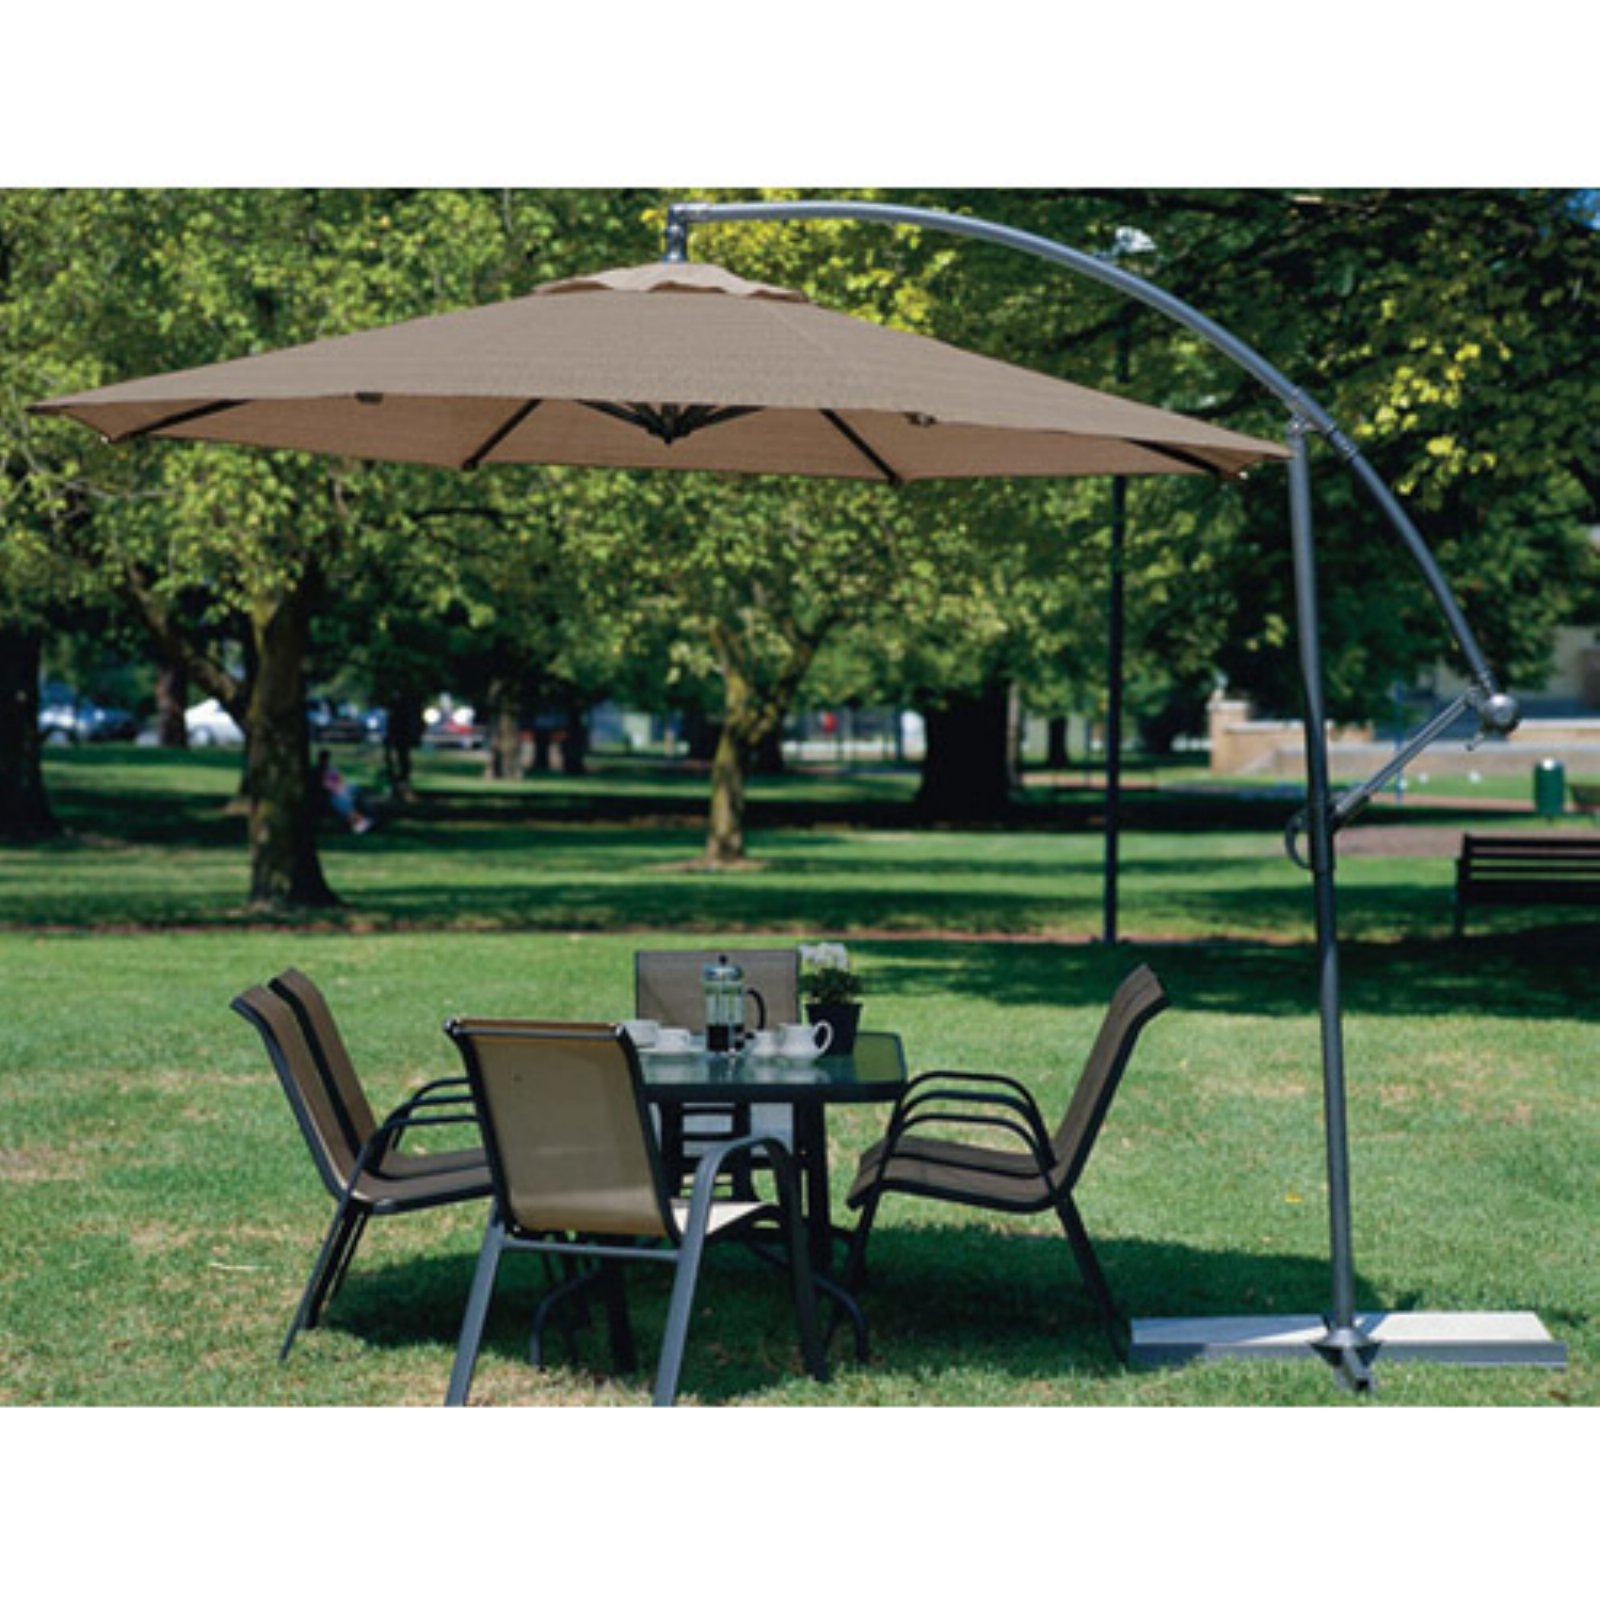 Charmant Coolaroo 10 Ft. Offset Patio Umbrella   Mocha